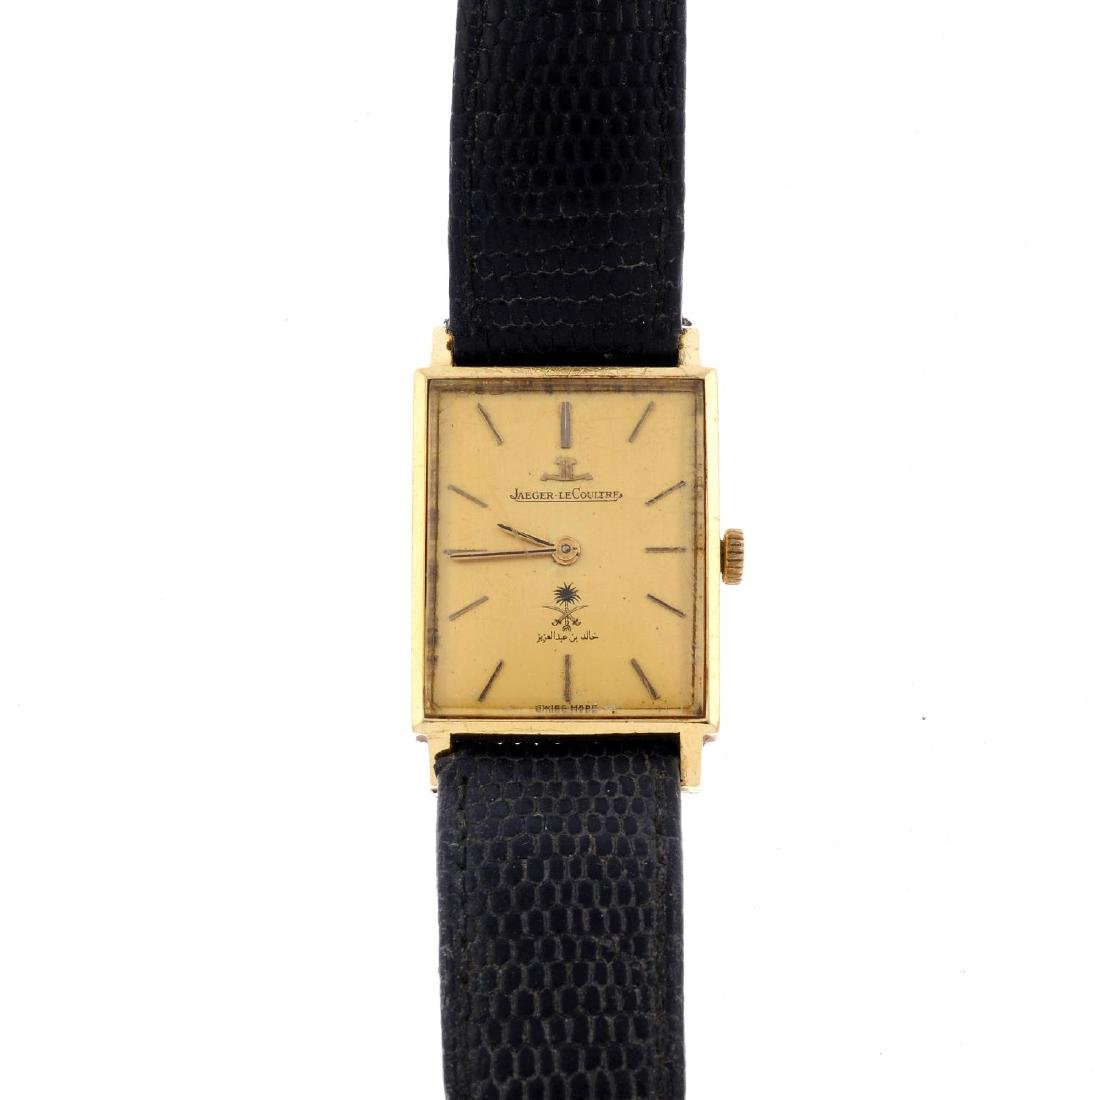 JAEGER-LECOULTURE - a gentleman's wrist watch. Yellow